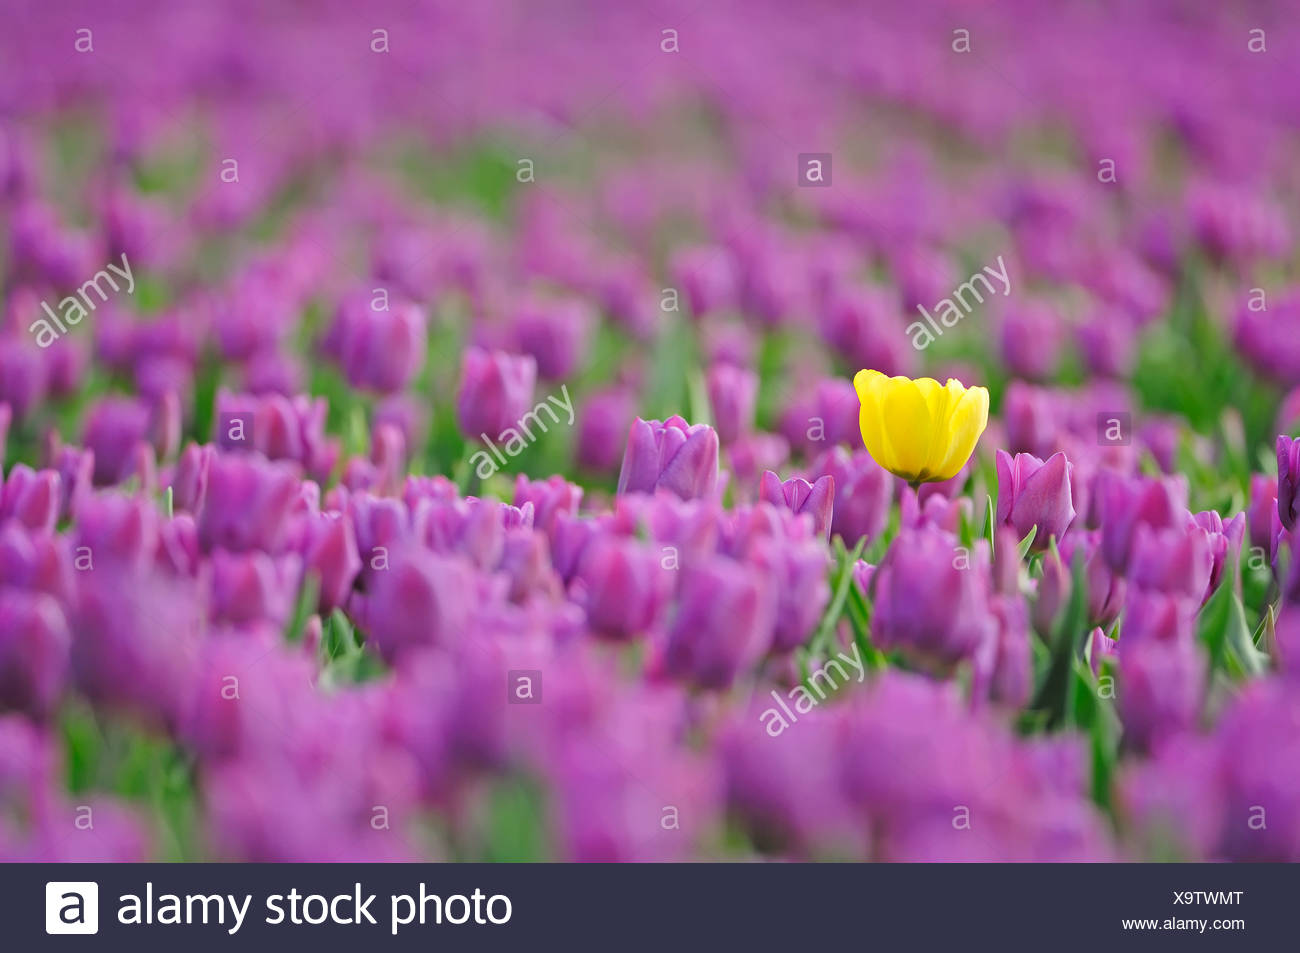 Single yellow tulip in the midst of many purple tulips in a field of Tulips (Tulipa sp.), near Lisse, South Holland, Holland Stock Photo